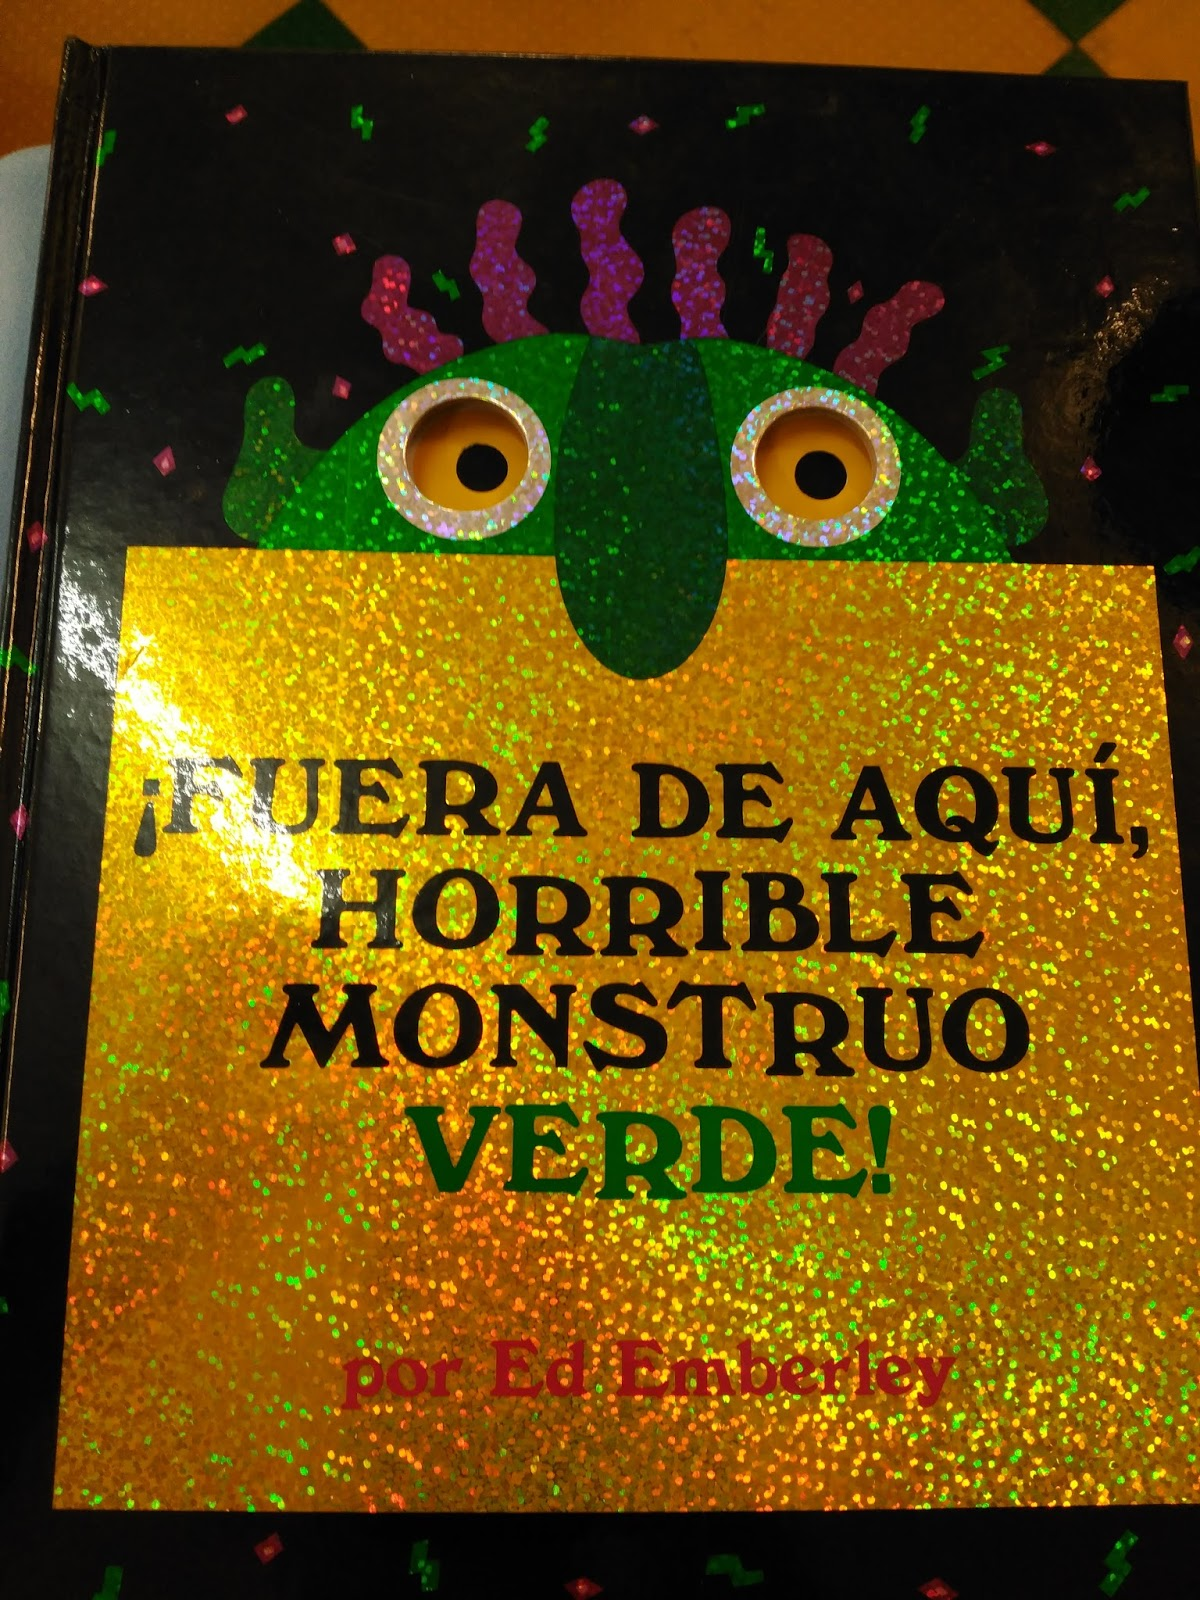 Educaci n infantil del francisco arranz 4 y 5 a os for Fuera de aqui horrible monstruo verde pdf